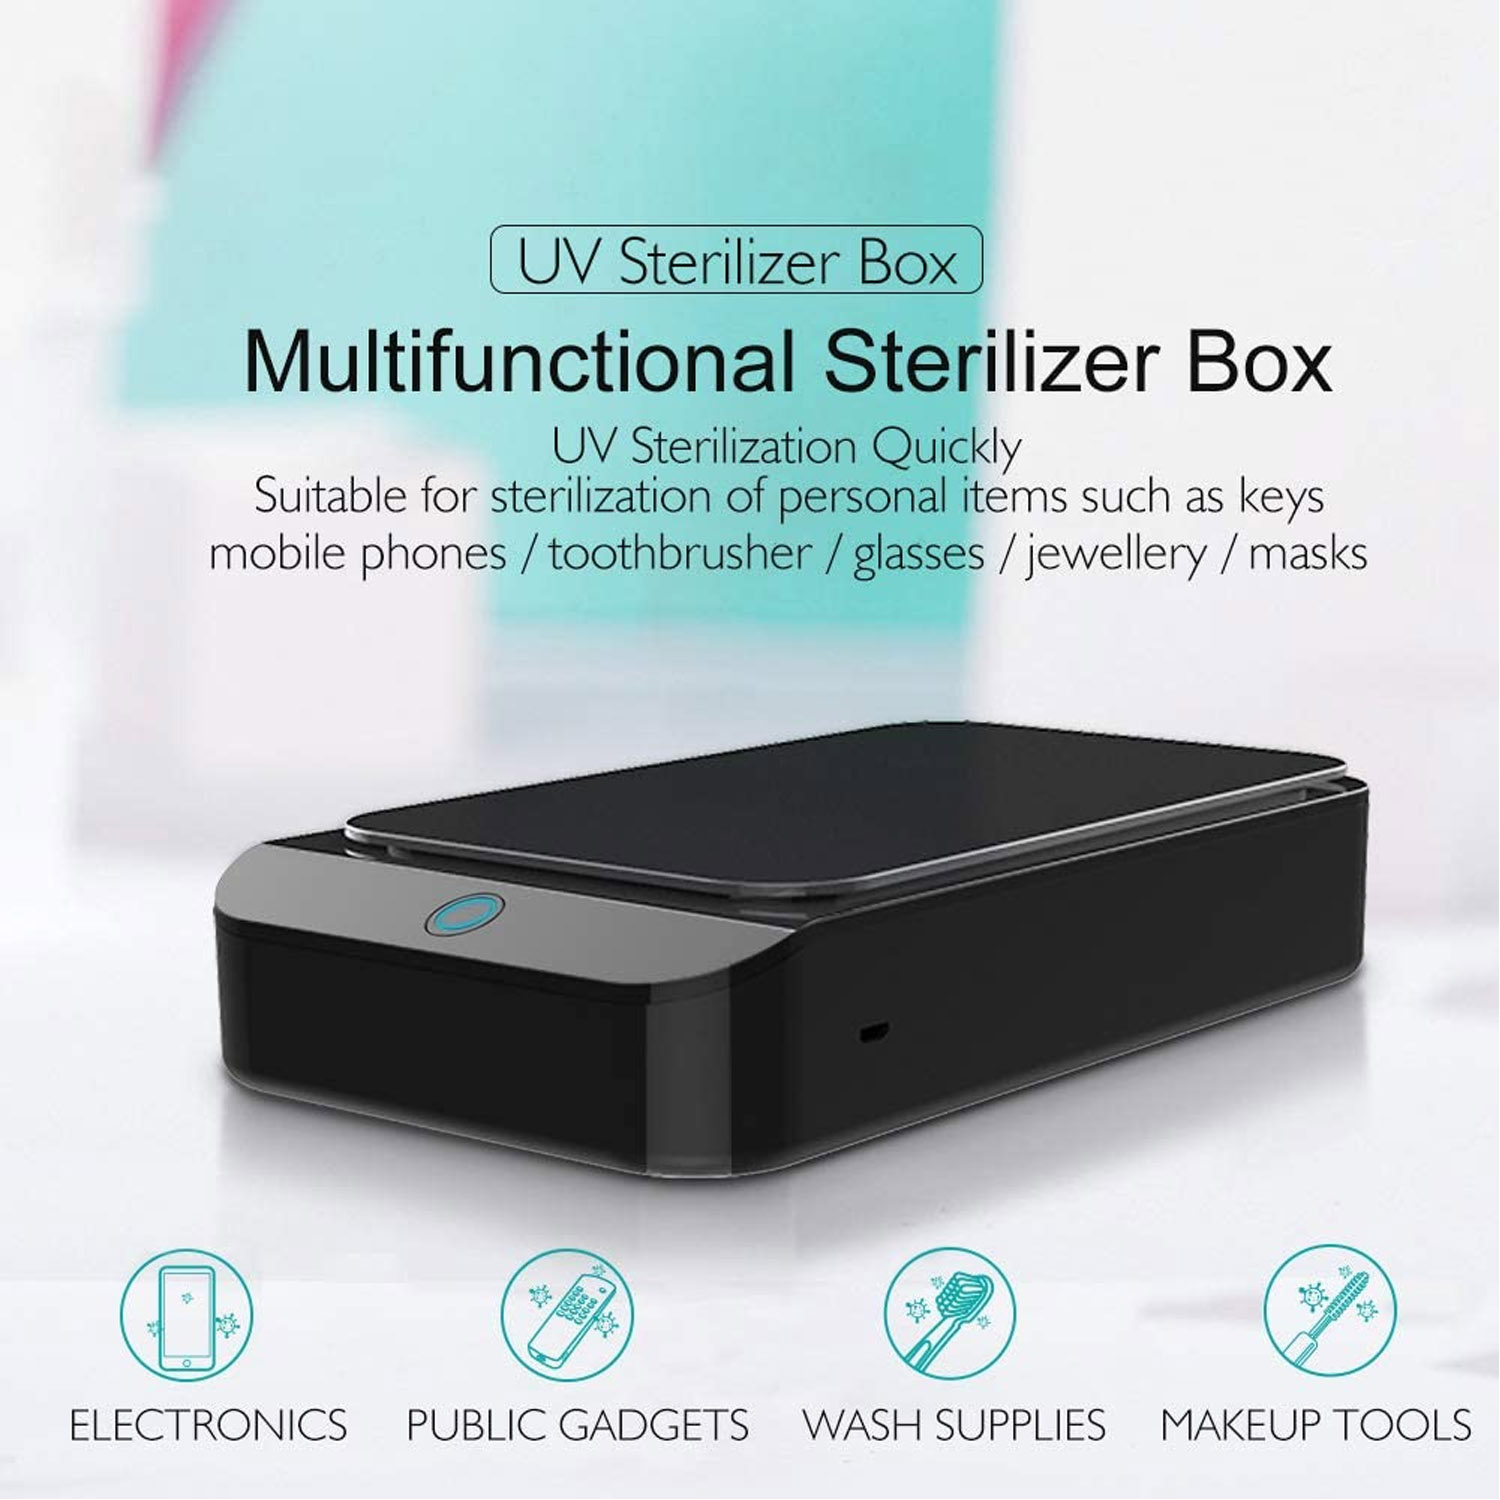 UV Light Sterilizer Disinfection Box Smart Phone Sterilizer Box Cleaner For Toothbrush Cell Phone Key Makeup Tools Sanitizer Box